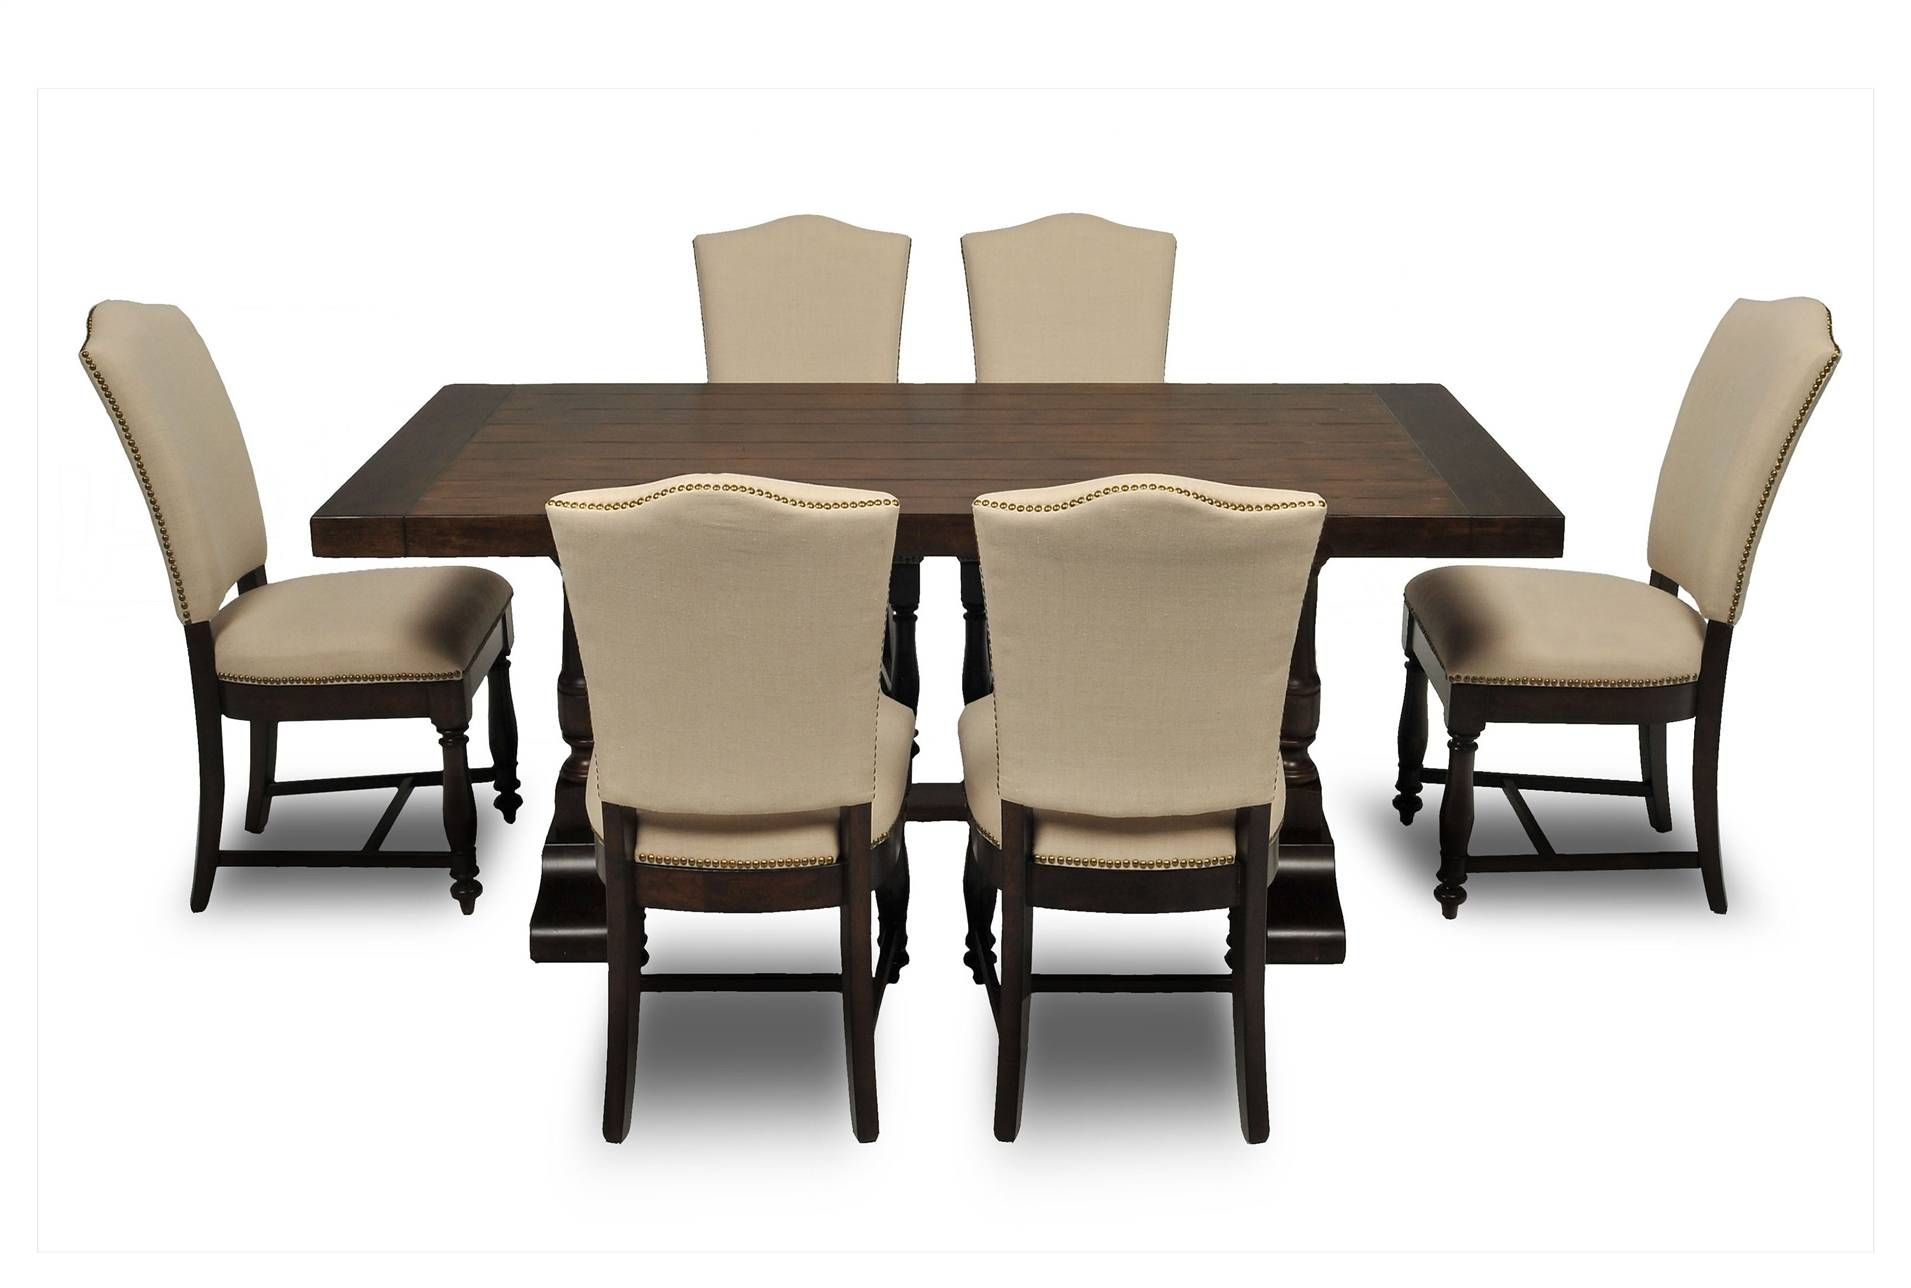 Arlo Uph 7 Piece Dining Set 59004-7 Available for same day ...